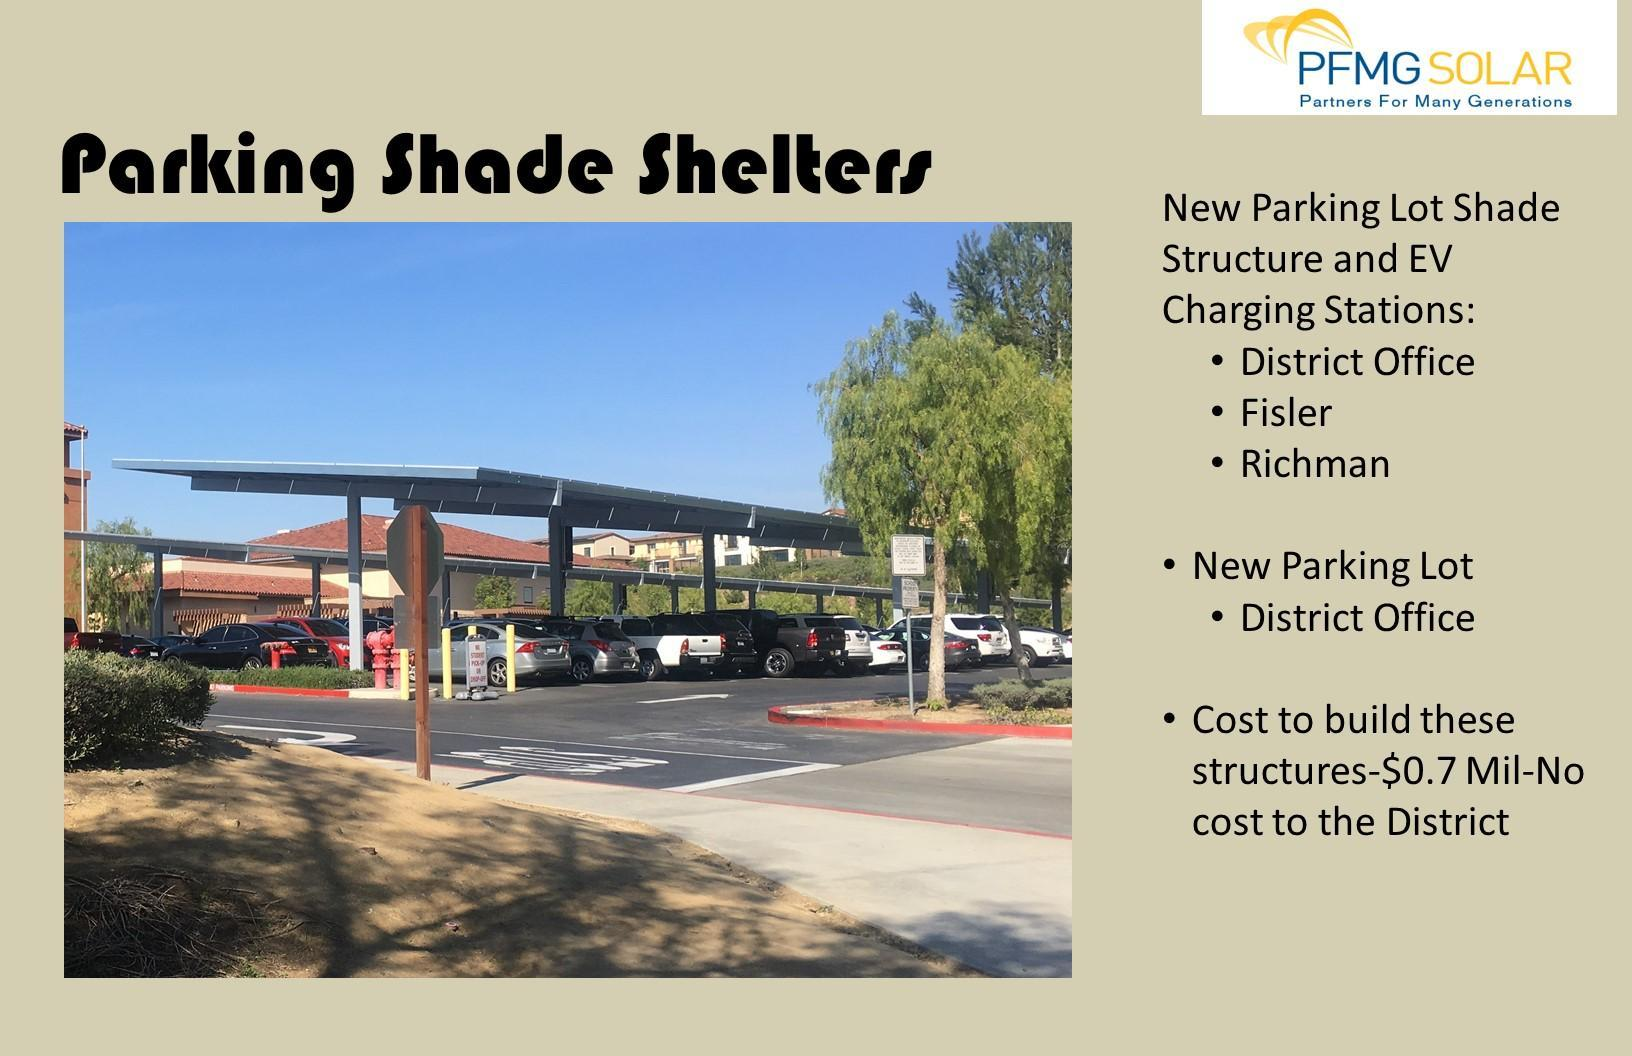 Parking Shade Shelters